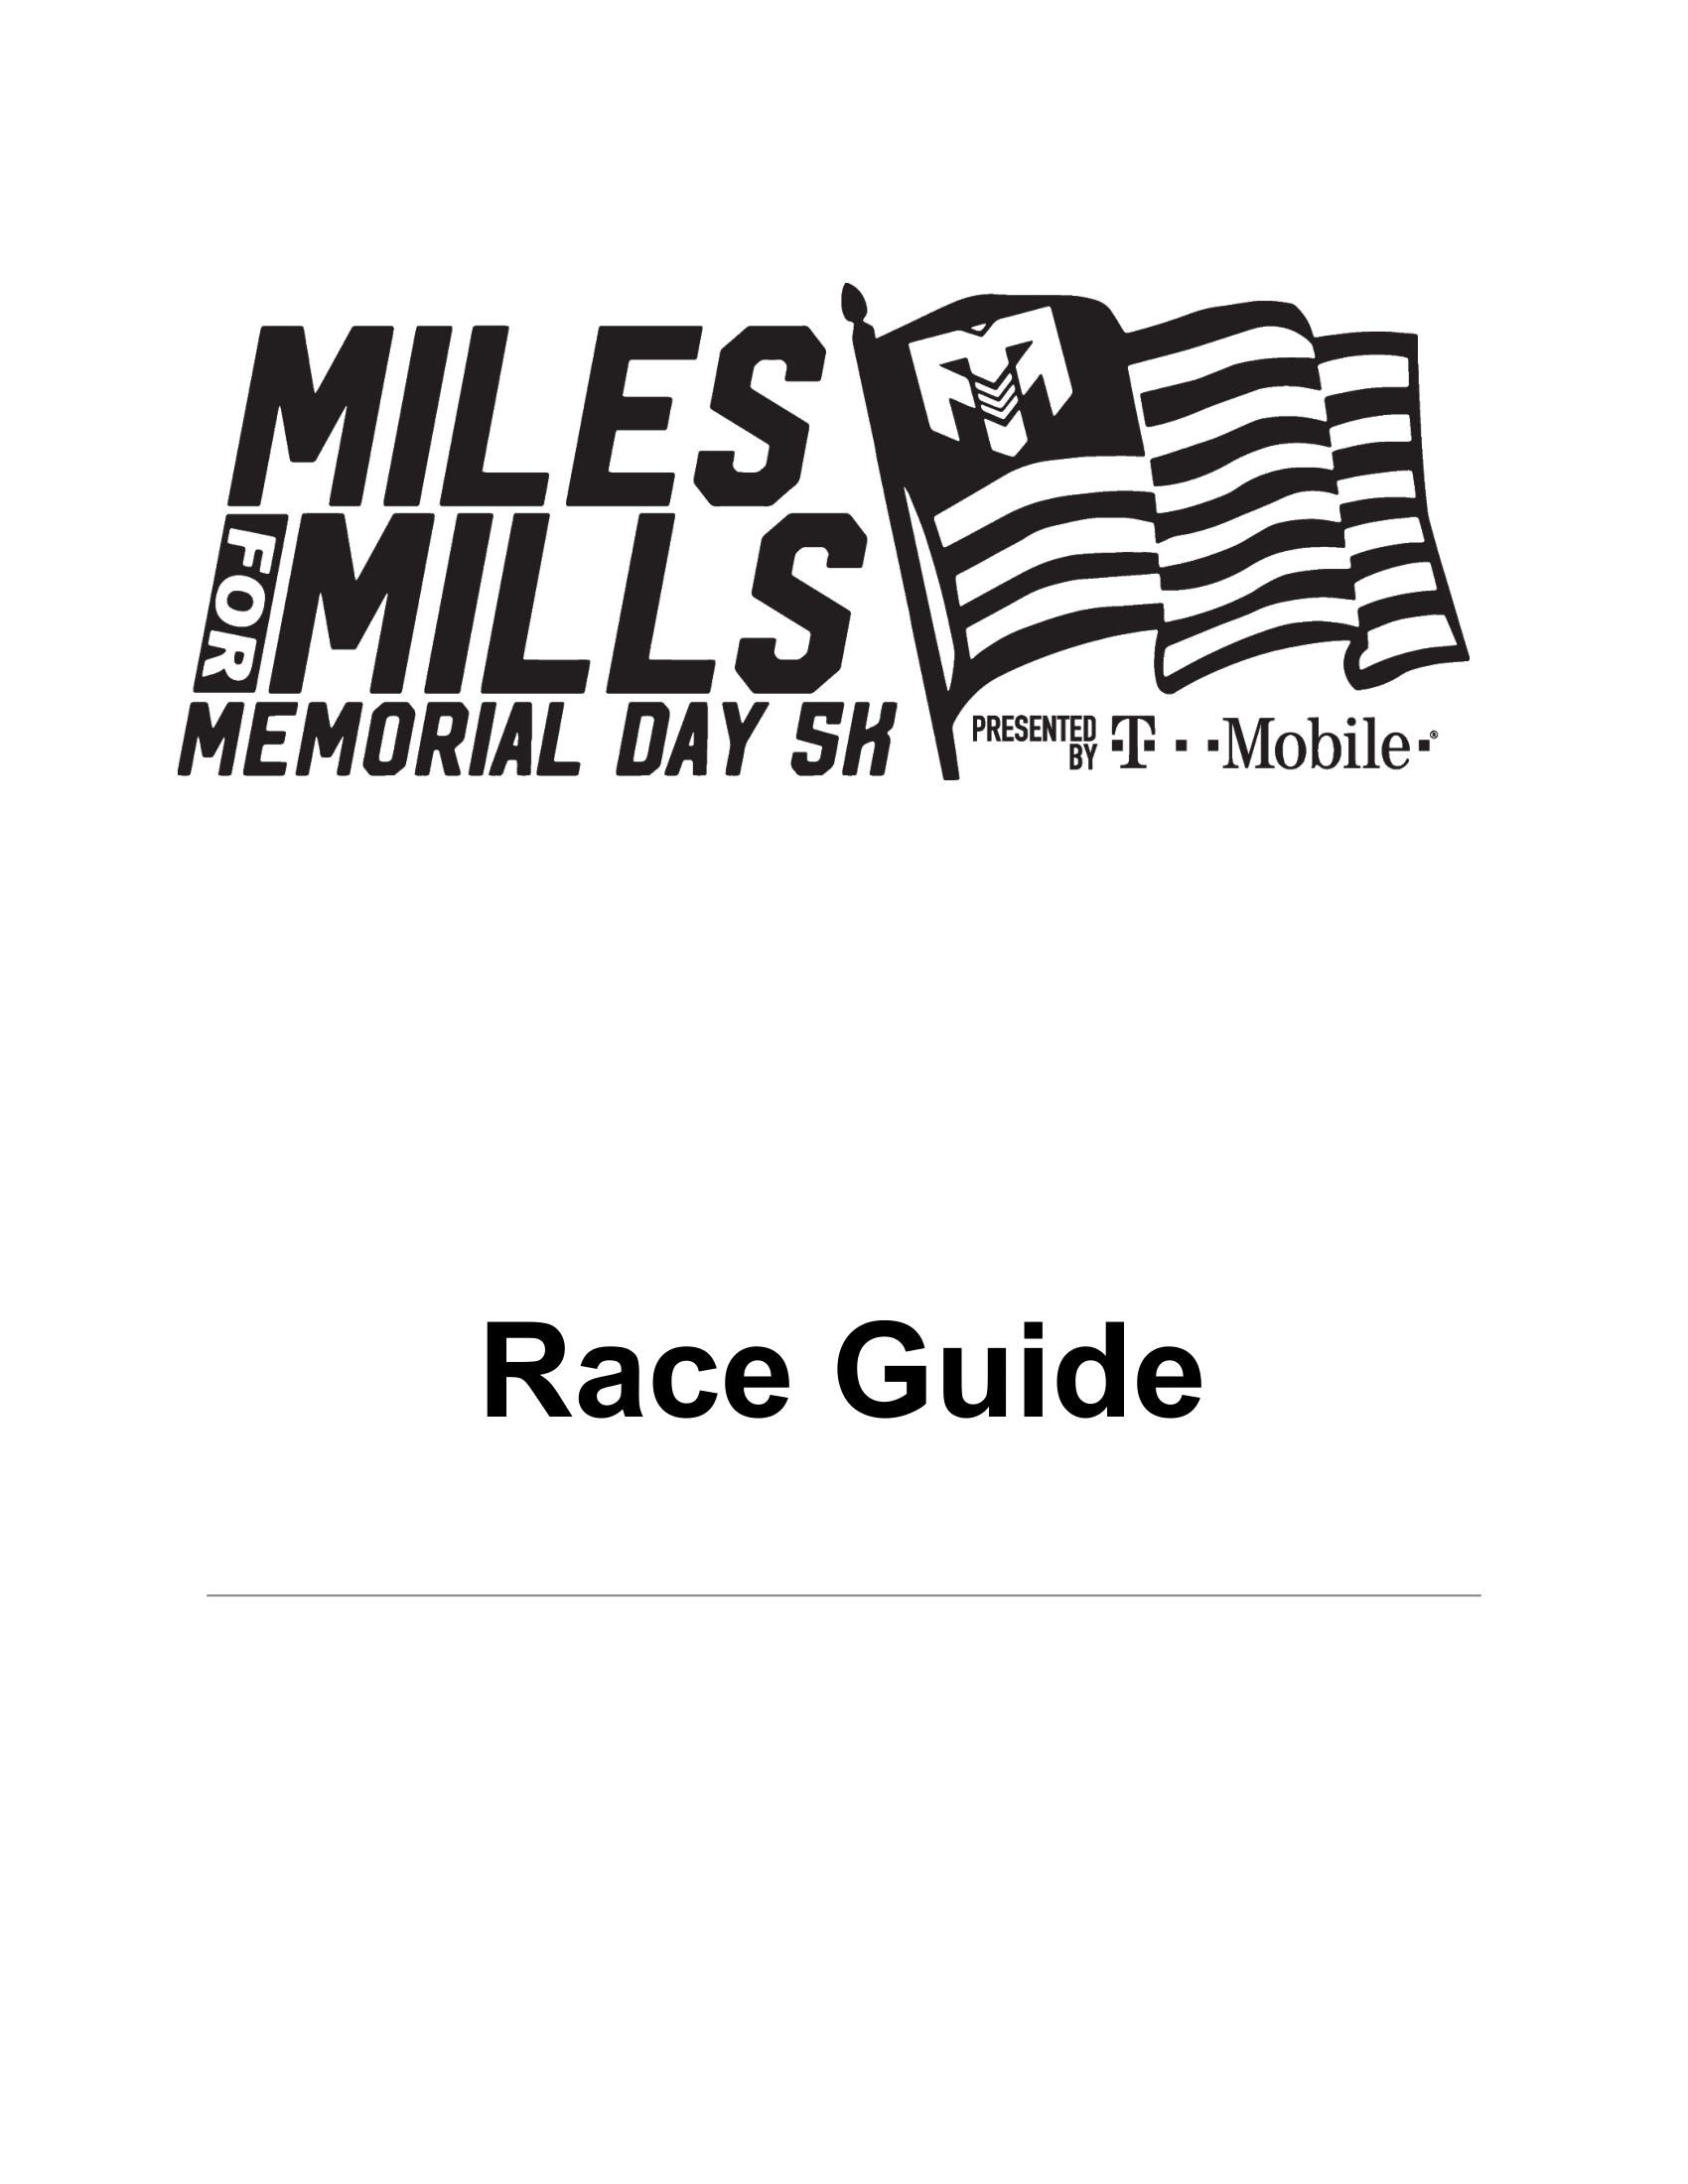 Miles for Mills Race Guide (1)-1.png